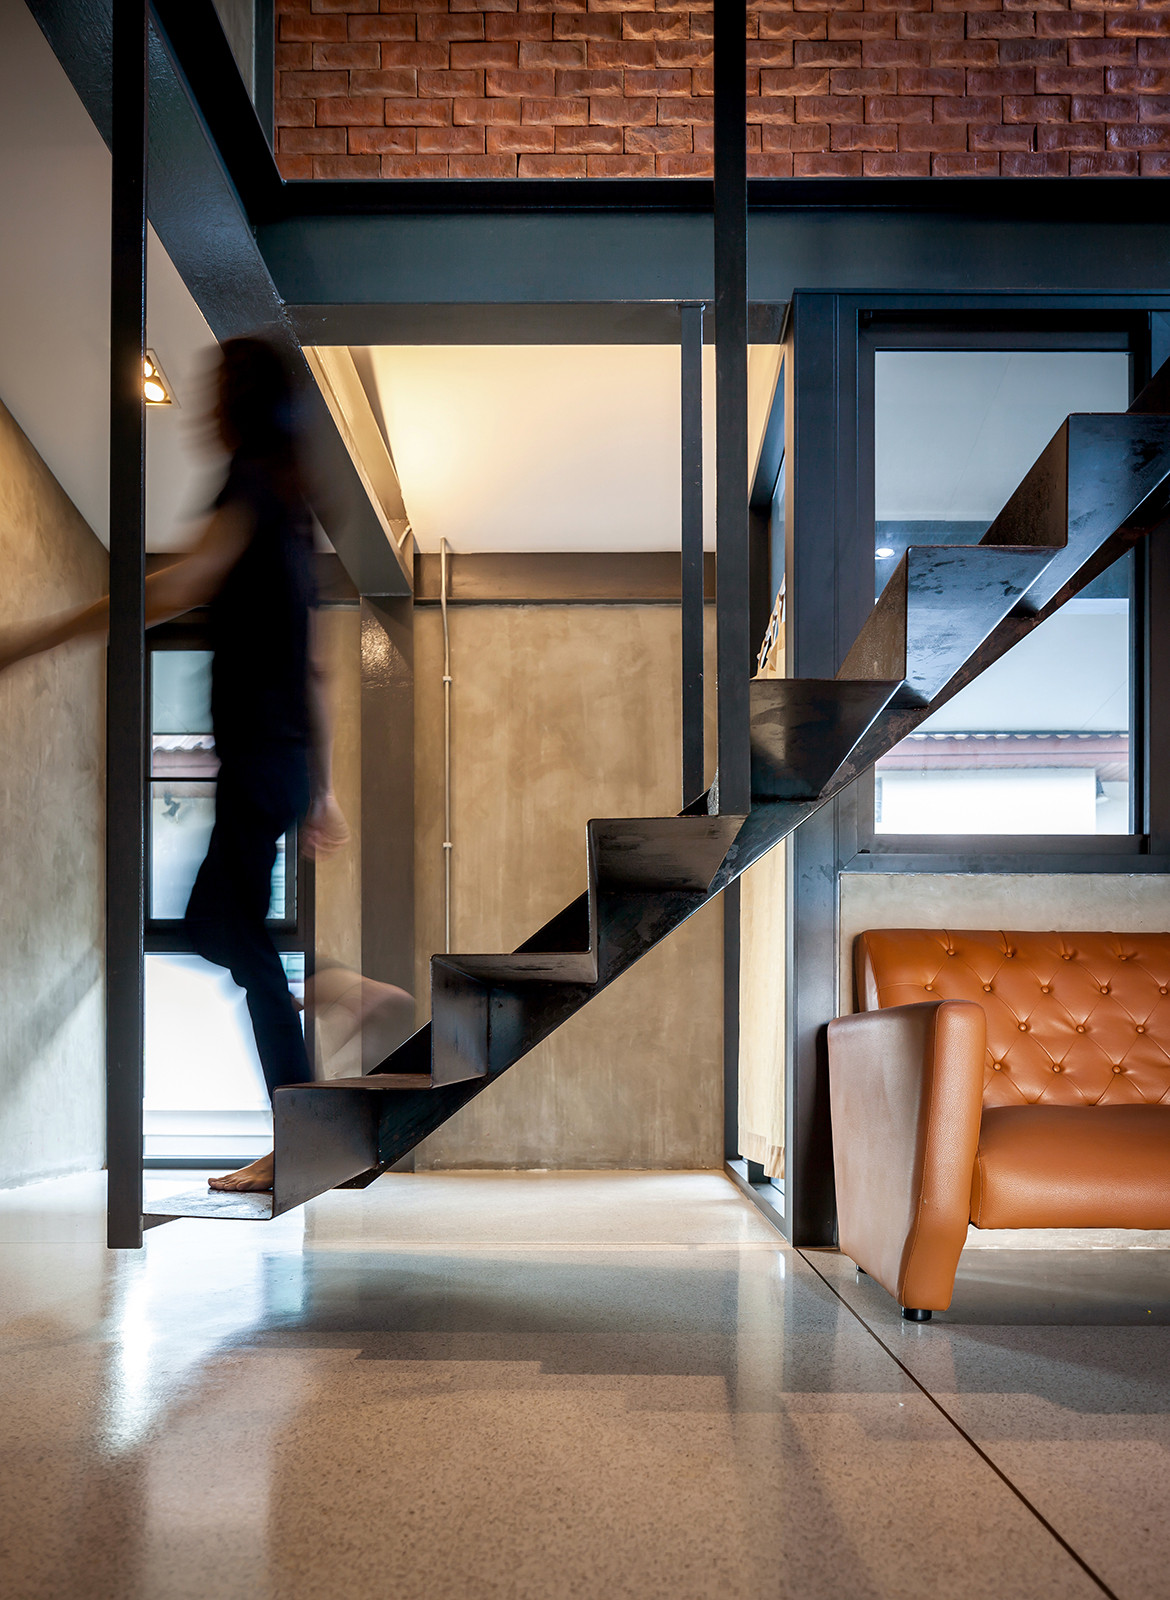 713 House Junsekino Architect and Design CC Spaceshift Studio floating stairs